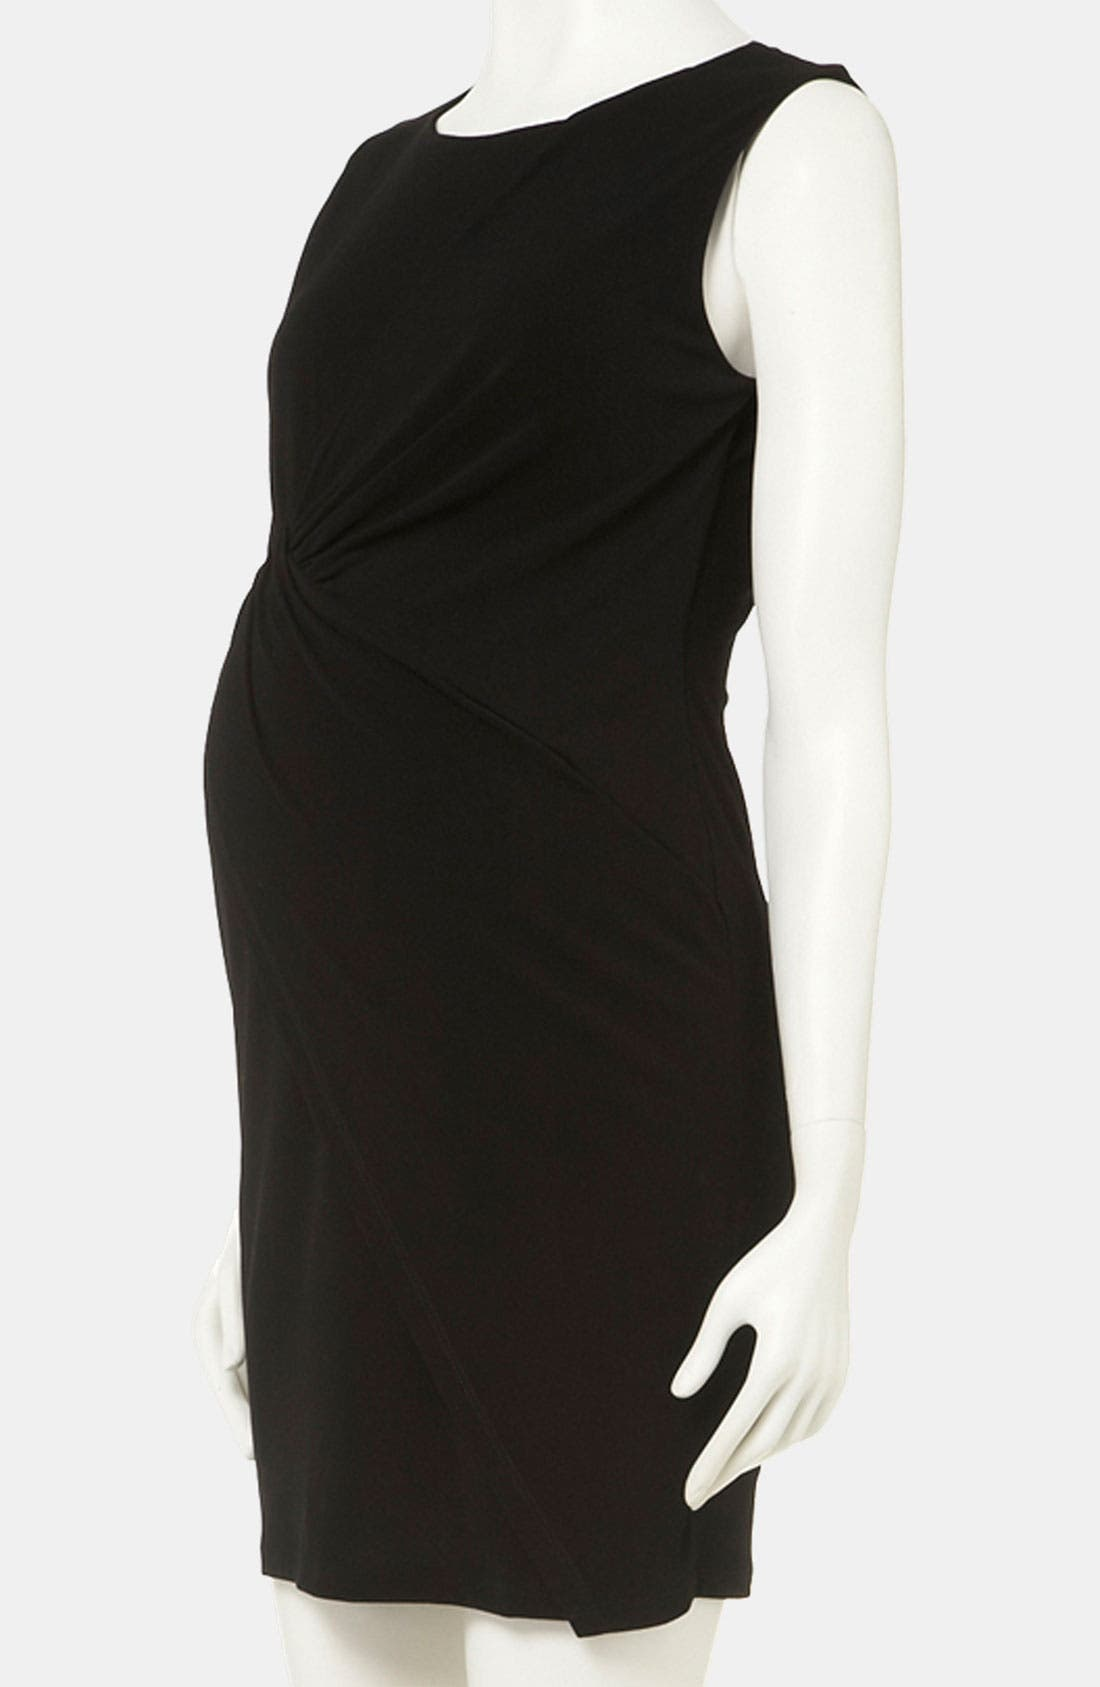 Alternate Image 1 Selected - Topshop Knot Detail Maternity Dress